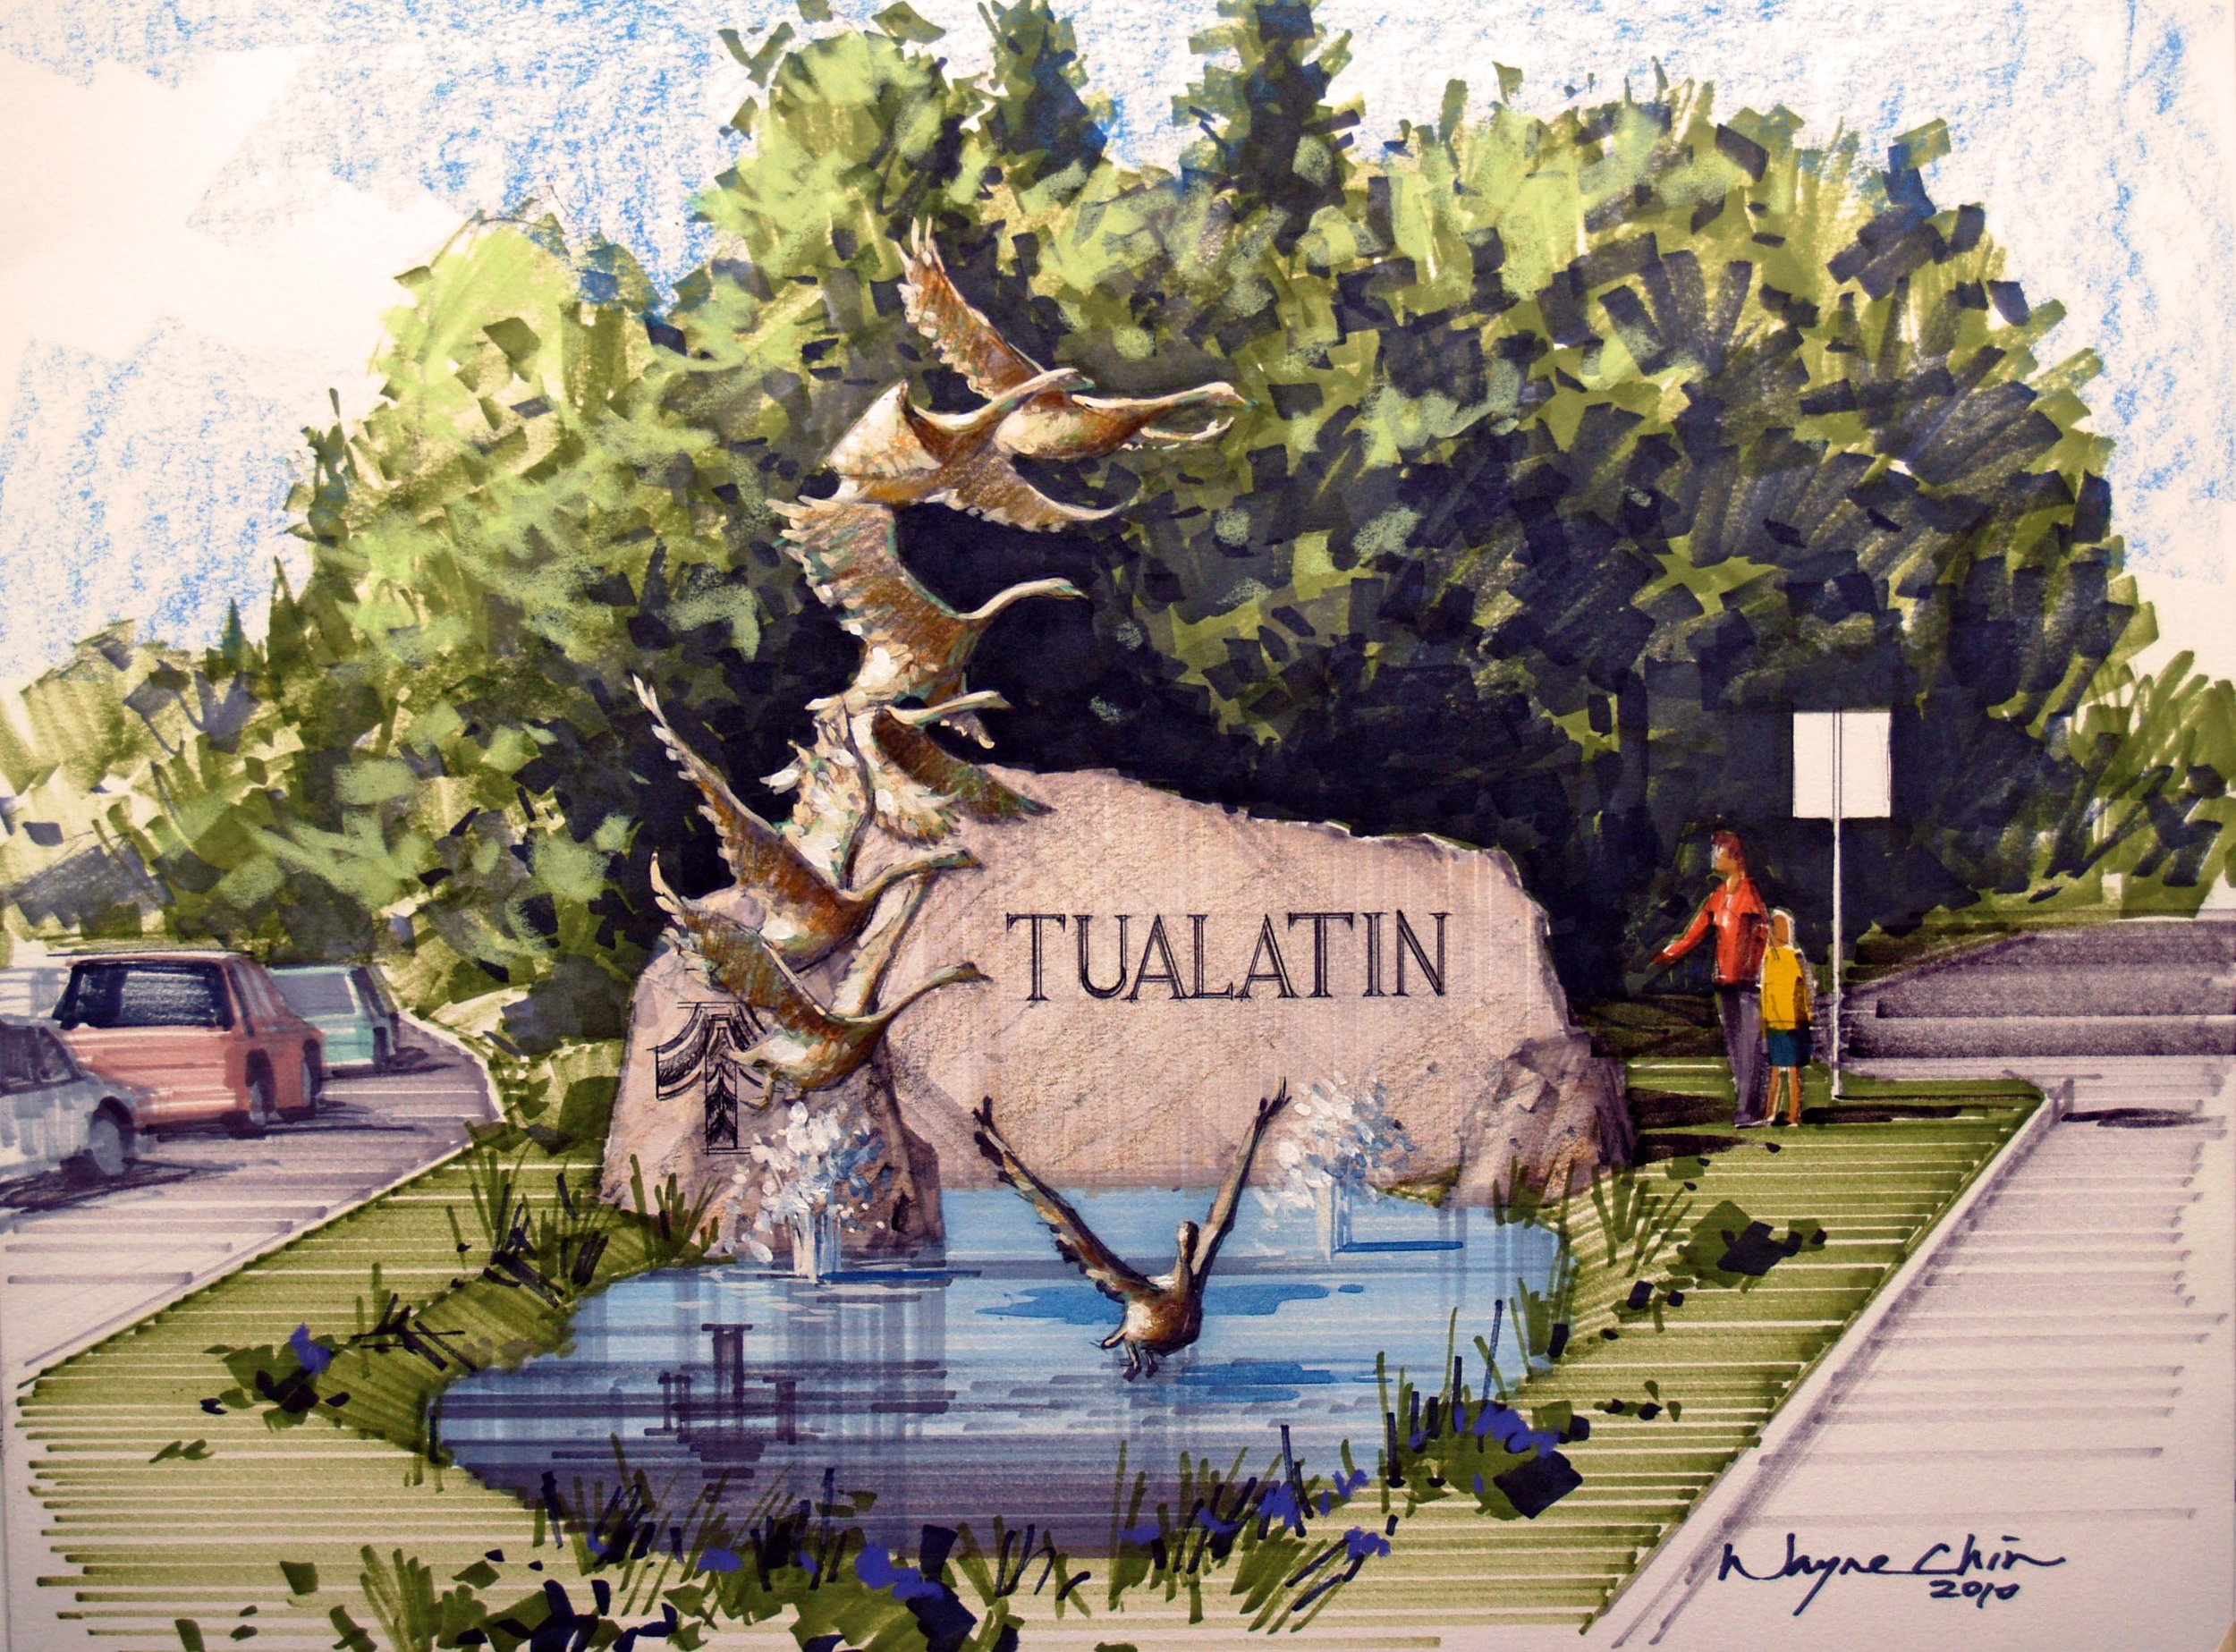 Tualatin Gateway Monument Bronze Sculpture.jpg